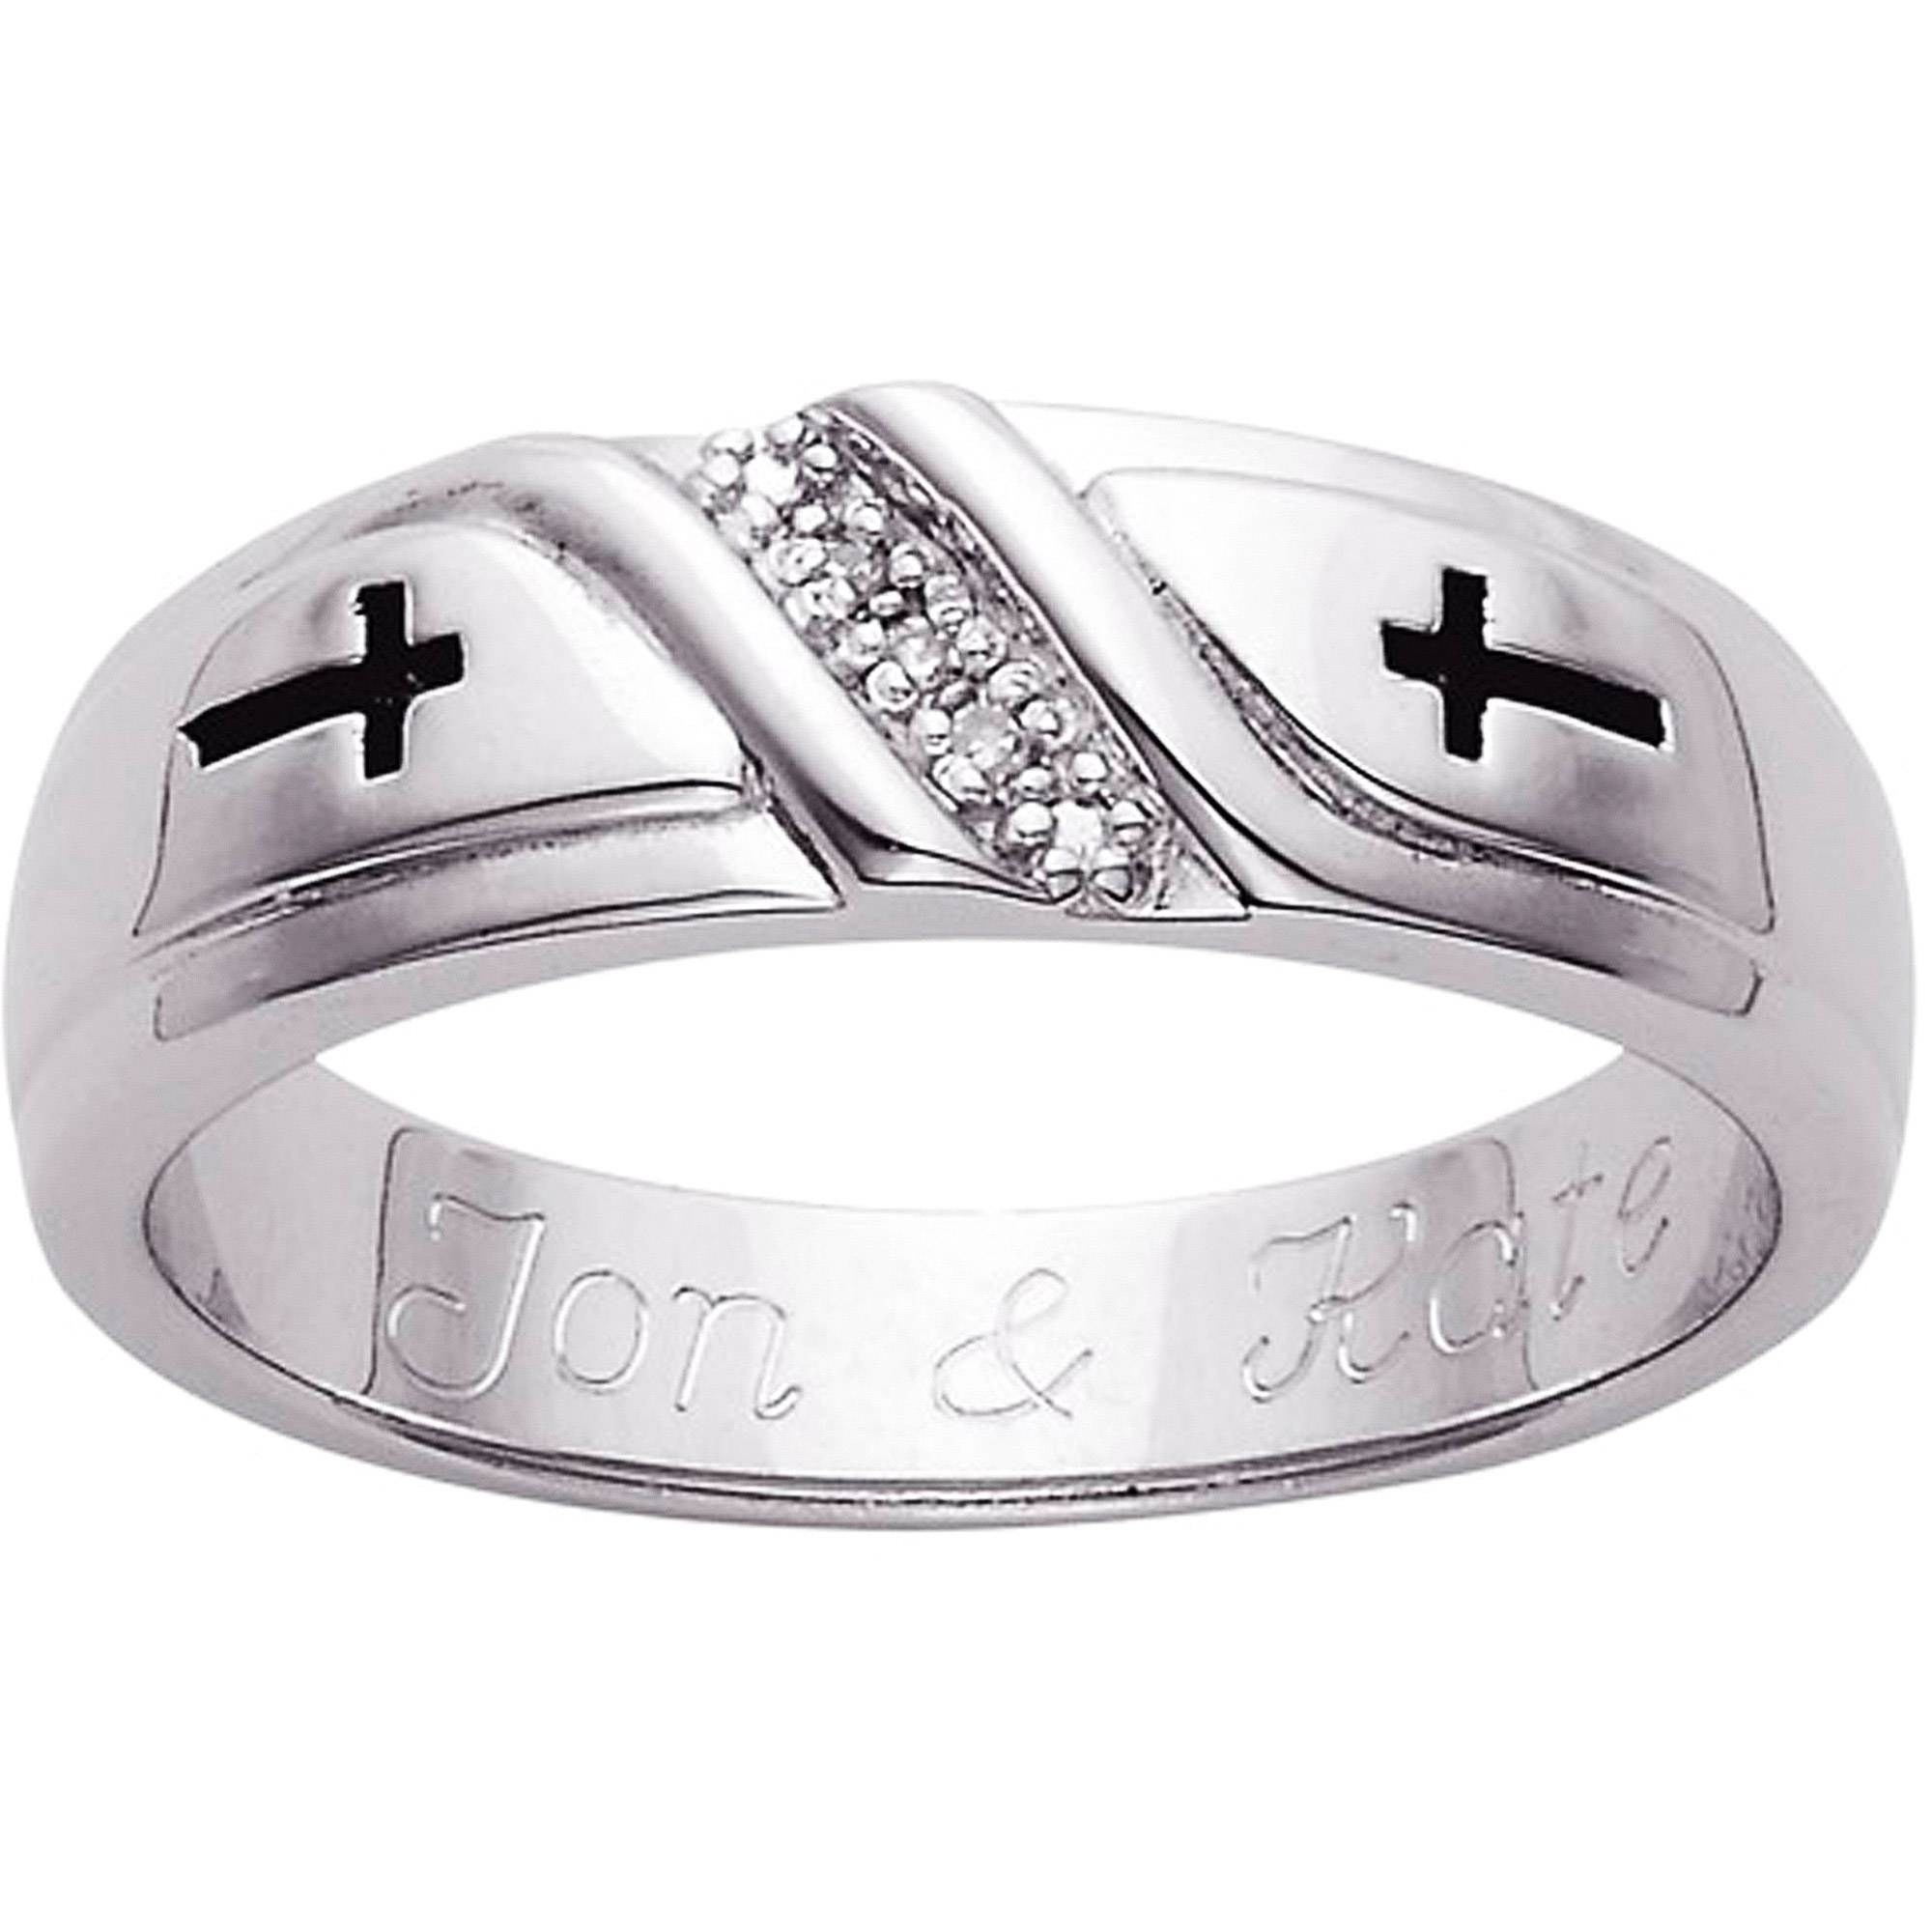 Personalized Men's Sterling Silver Diamond Accent Cross Wedding Regarding Cross Wedding Bands (Gallery 7 of 15)